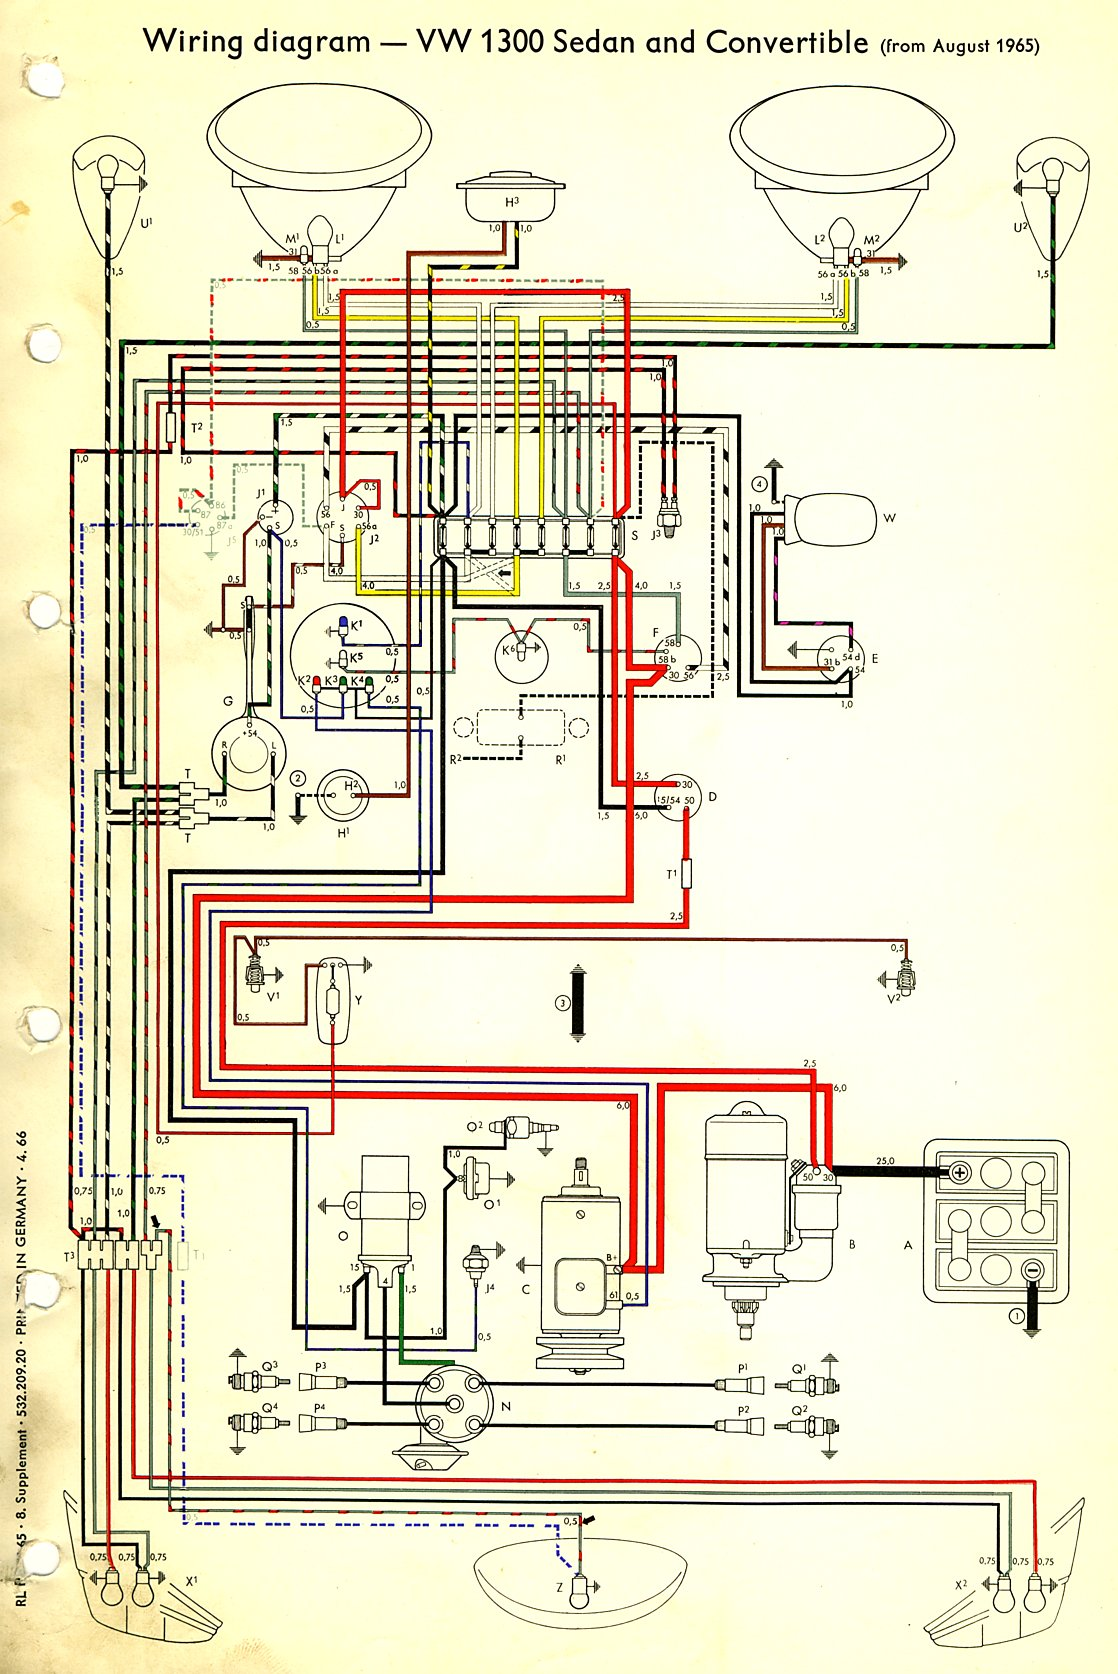 1966 Vw Coil Wire Diagram Content Resource Of Wiring Ford 460 Beetle Schematics Diagrams U2022 Rh Parntesis Co Harley